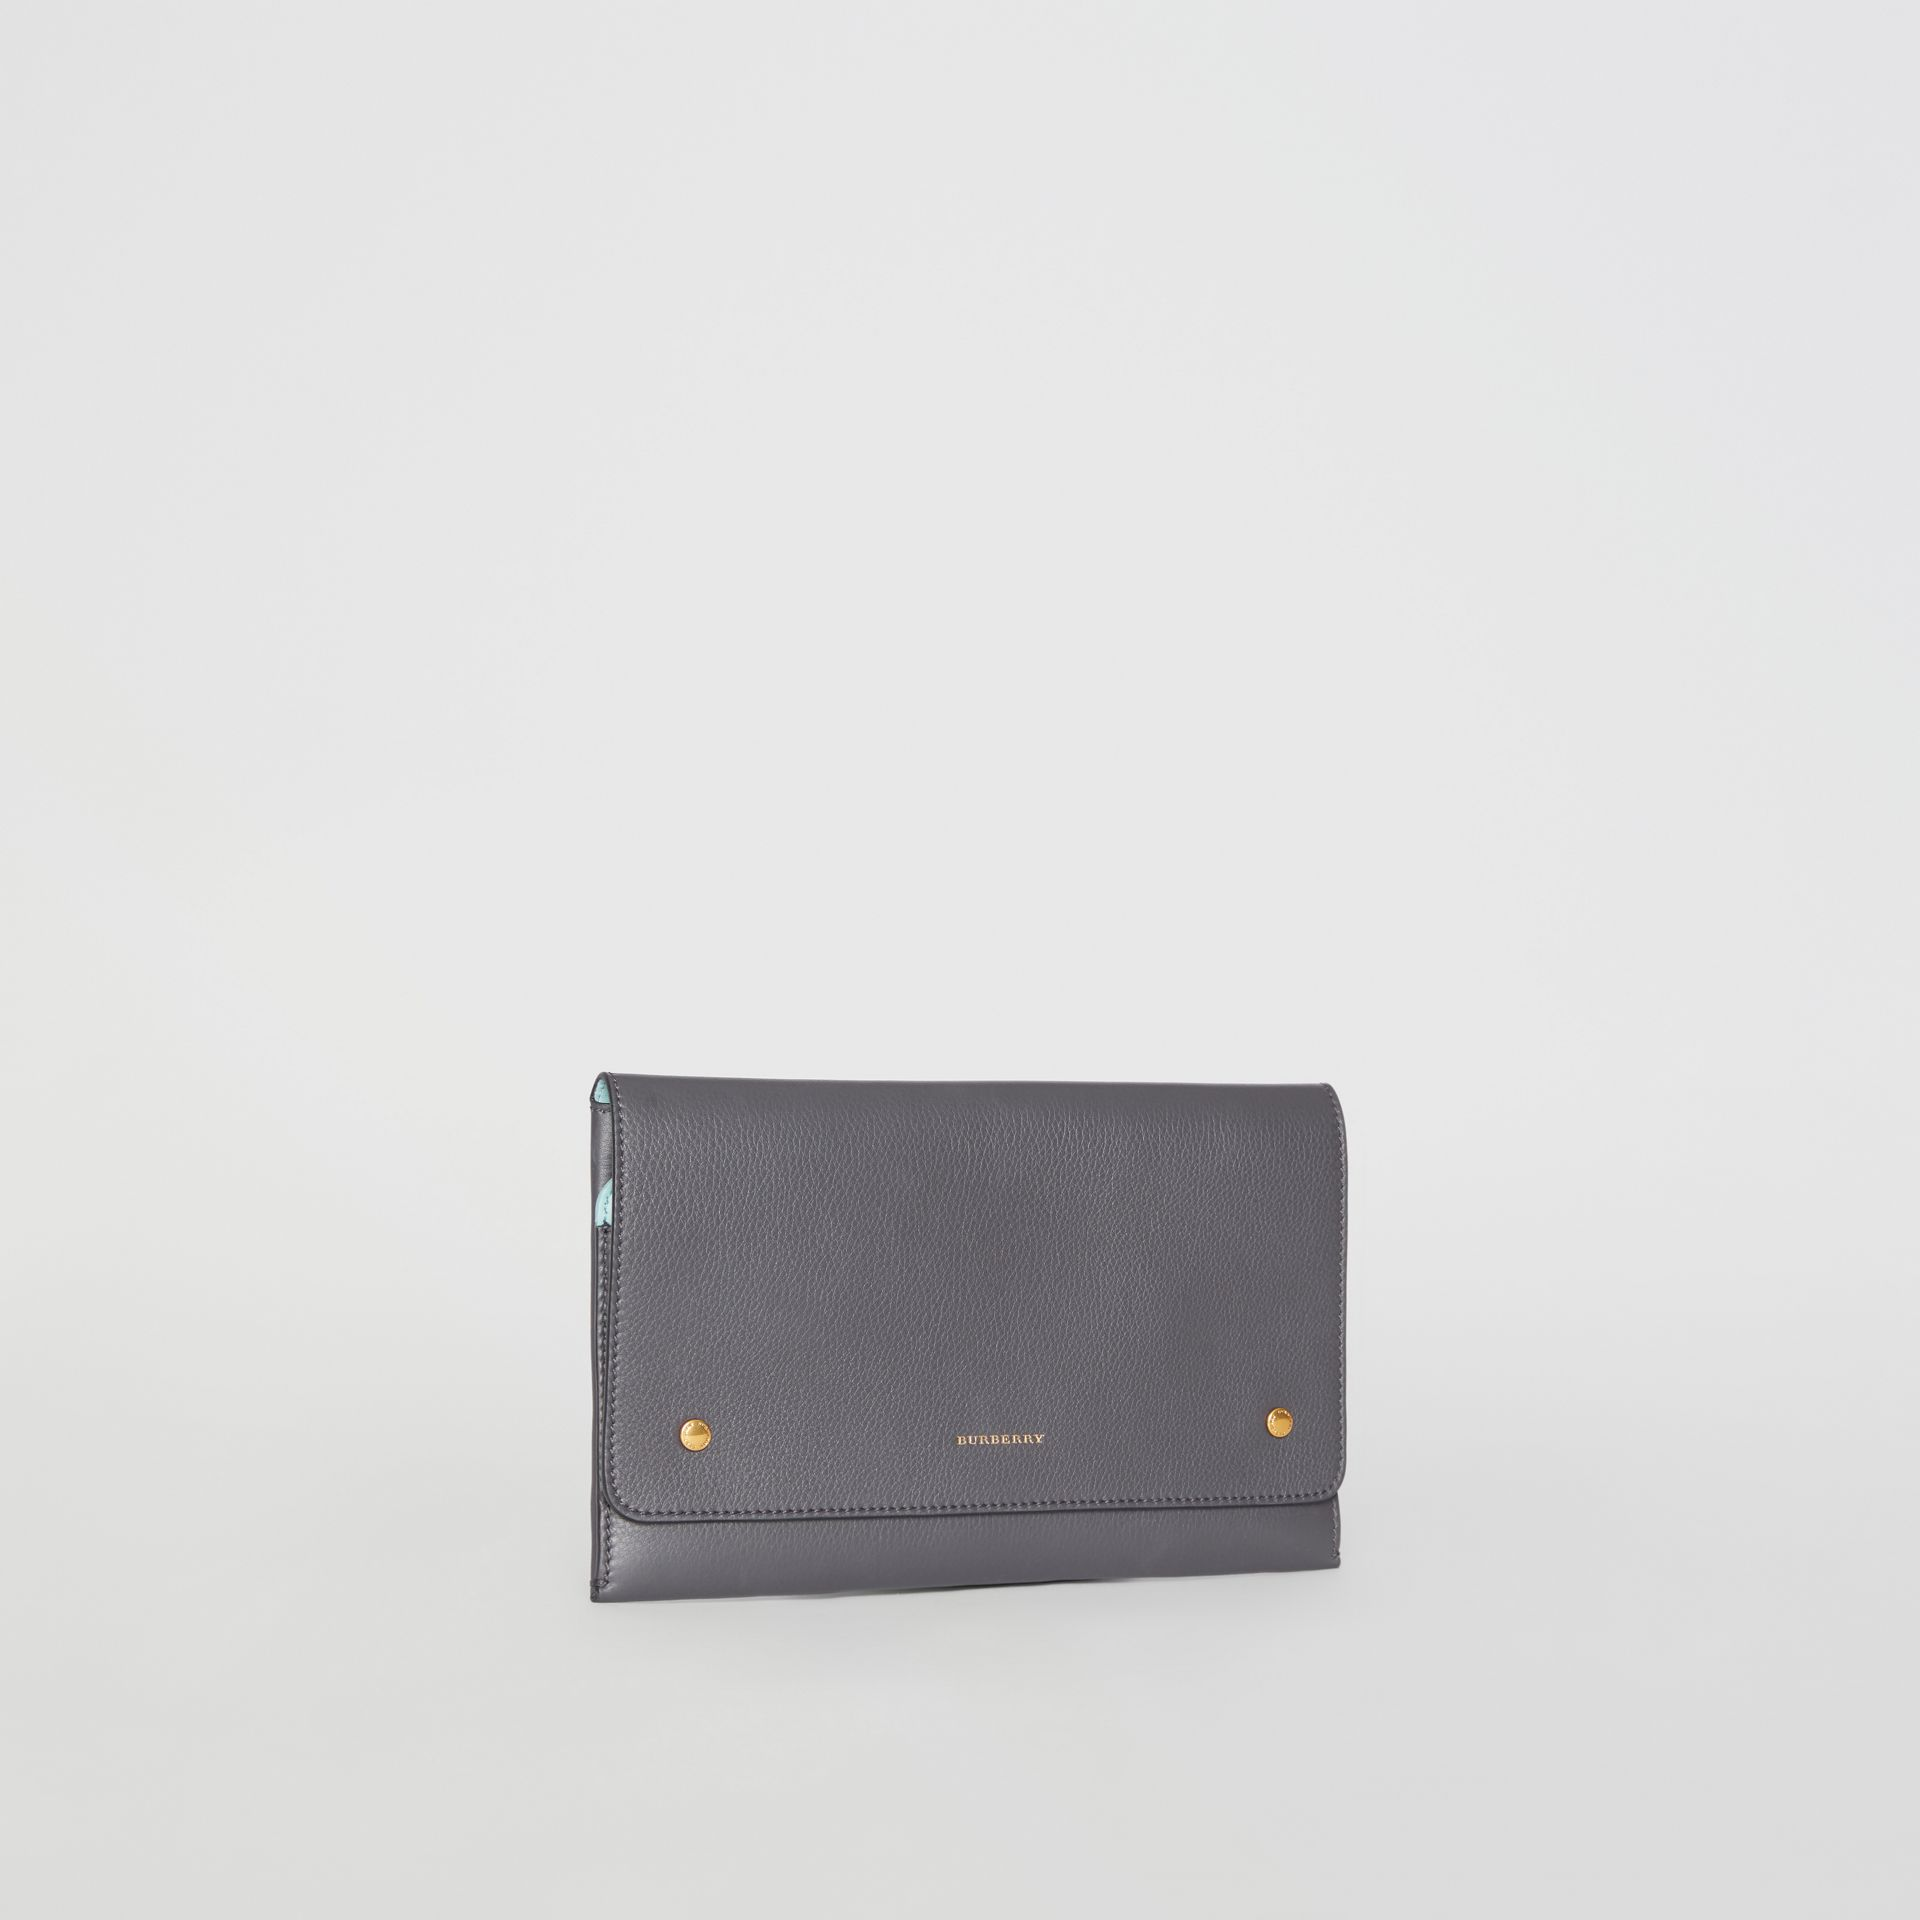 Two-tone Leather Wristlet Clutch in Charcoal Grey - Women | Burberry - gallery image 6